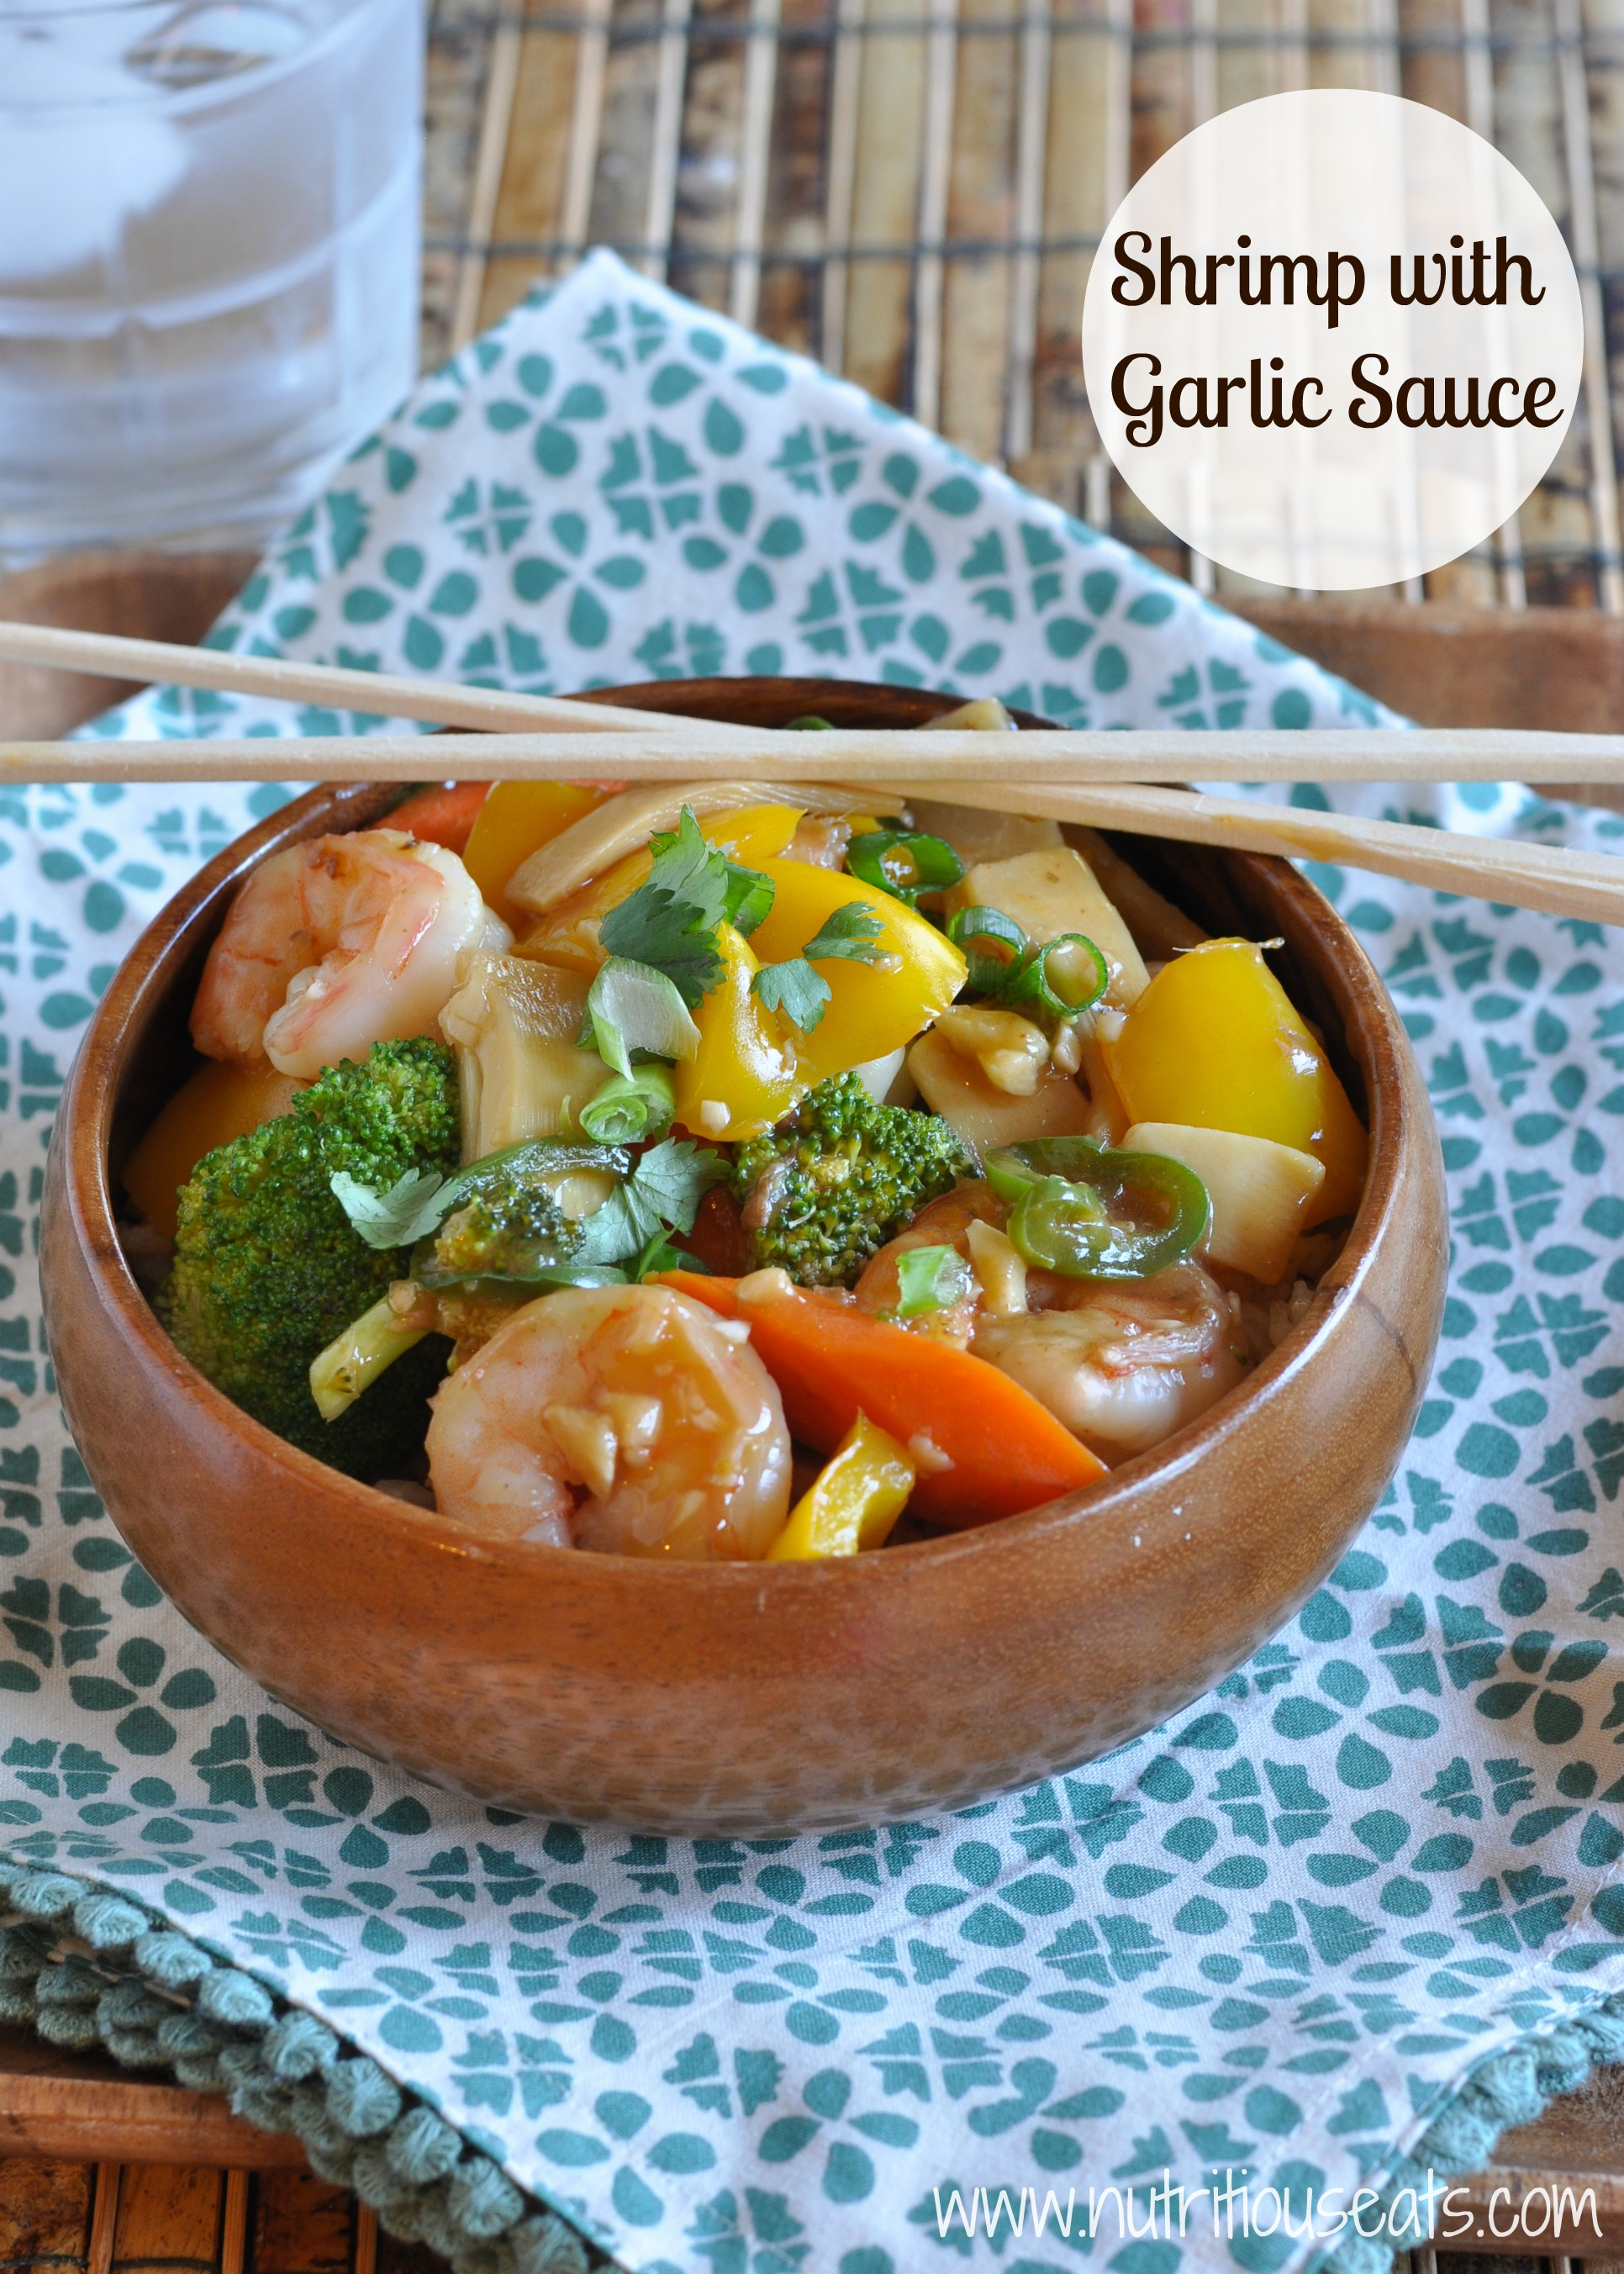 Shrimp with garlic sauce nutritious eats forumfinder Gallery